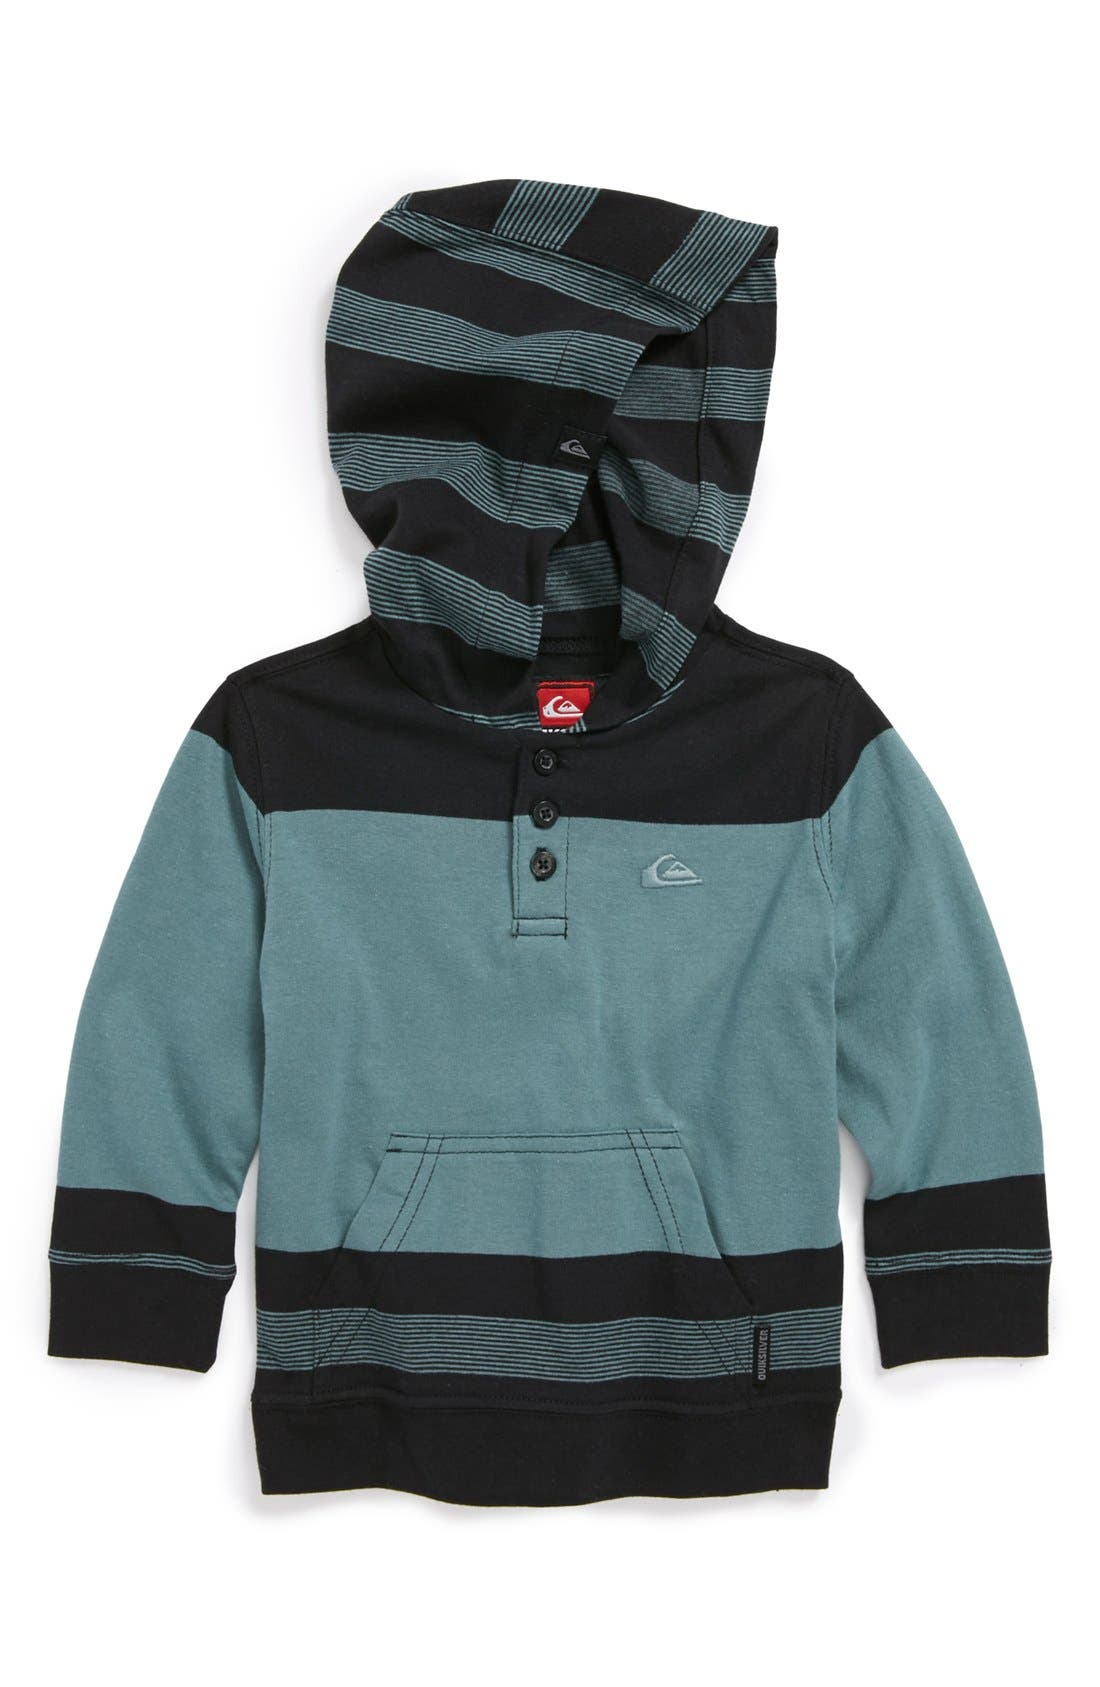 Main Image - Quiksilver 'Sand Dollar' Henley Hooded Sweater (Baby Boys)